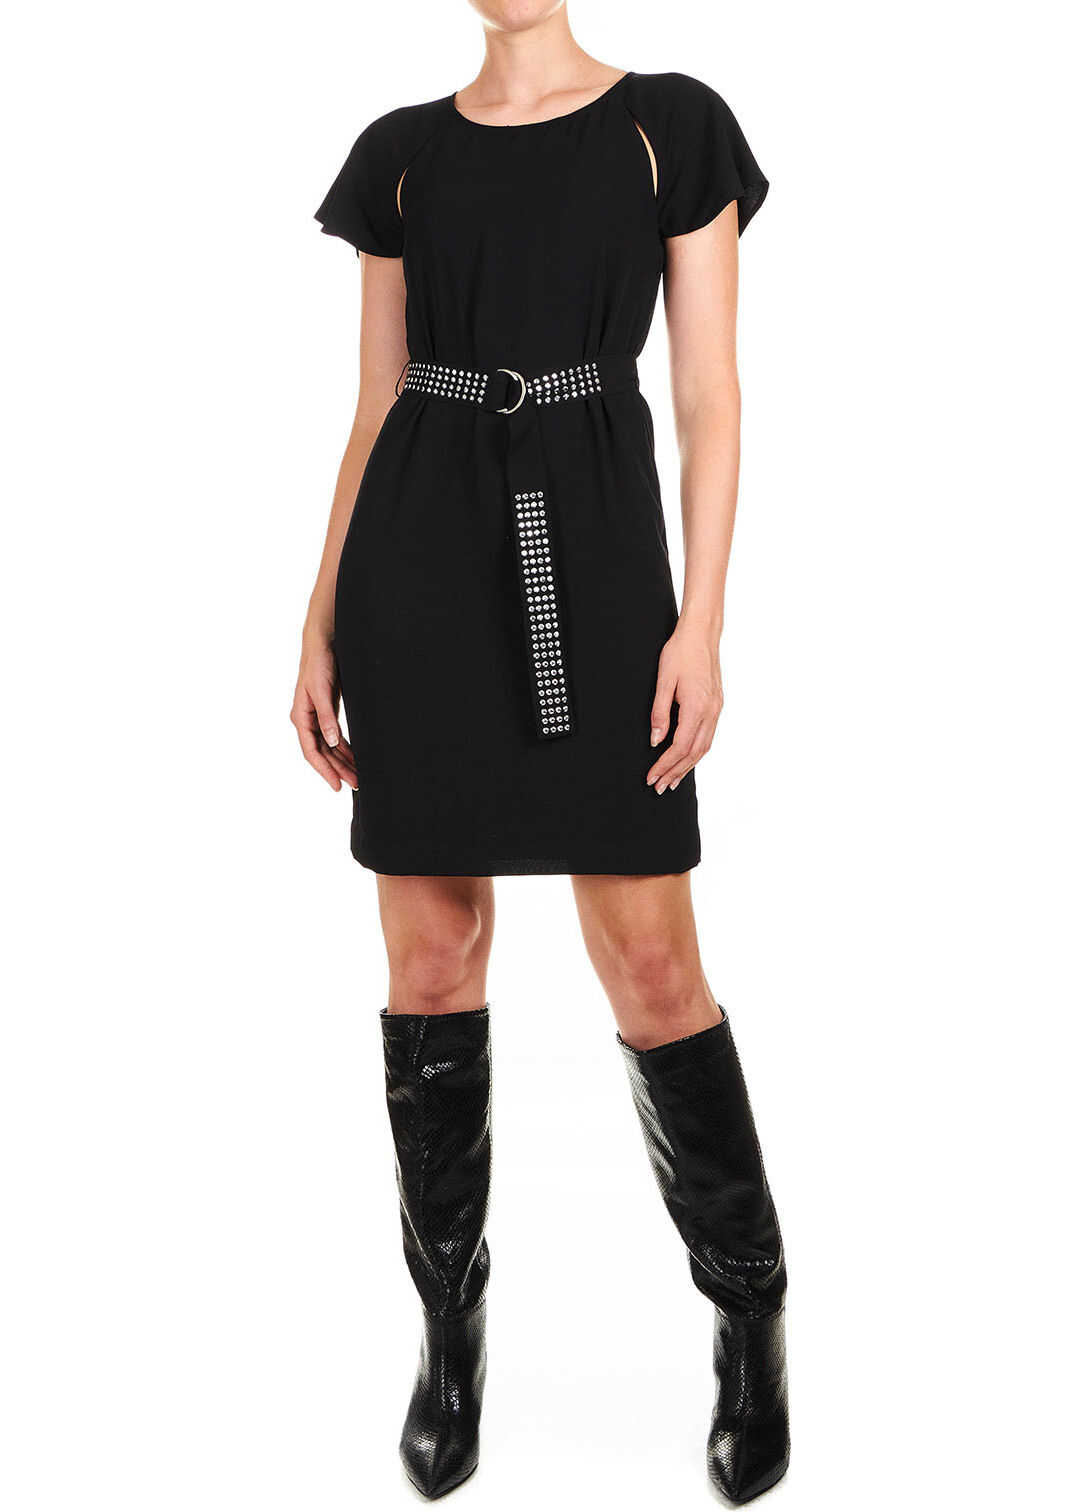 GUESS Mini dress with strass belt Black